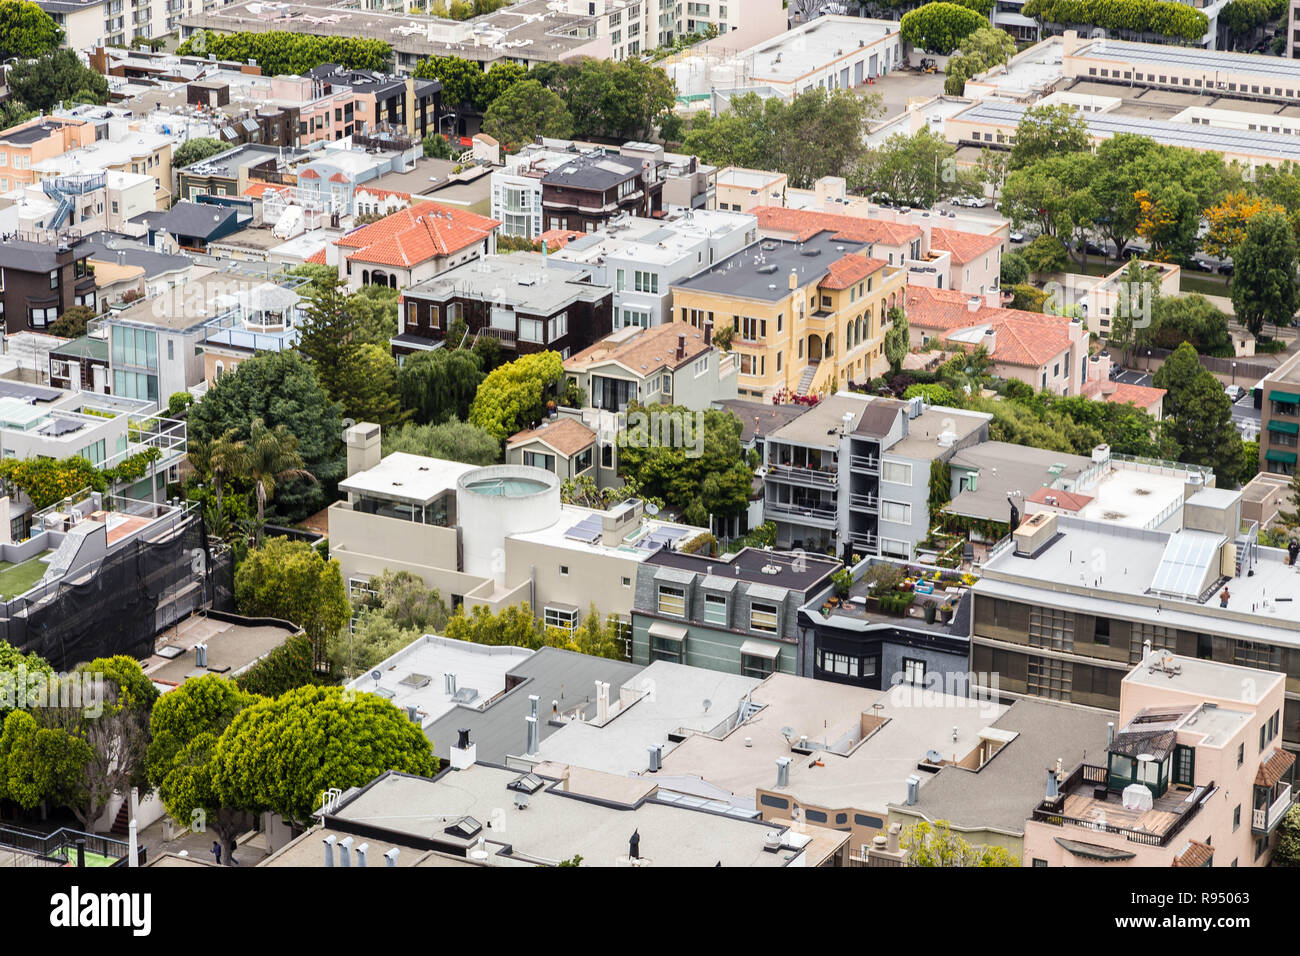 Aerial view of San Francisco rooftops from Coit Tower - Stock Image